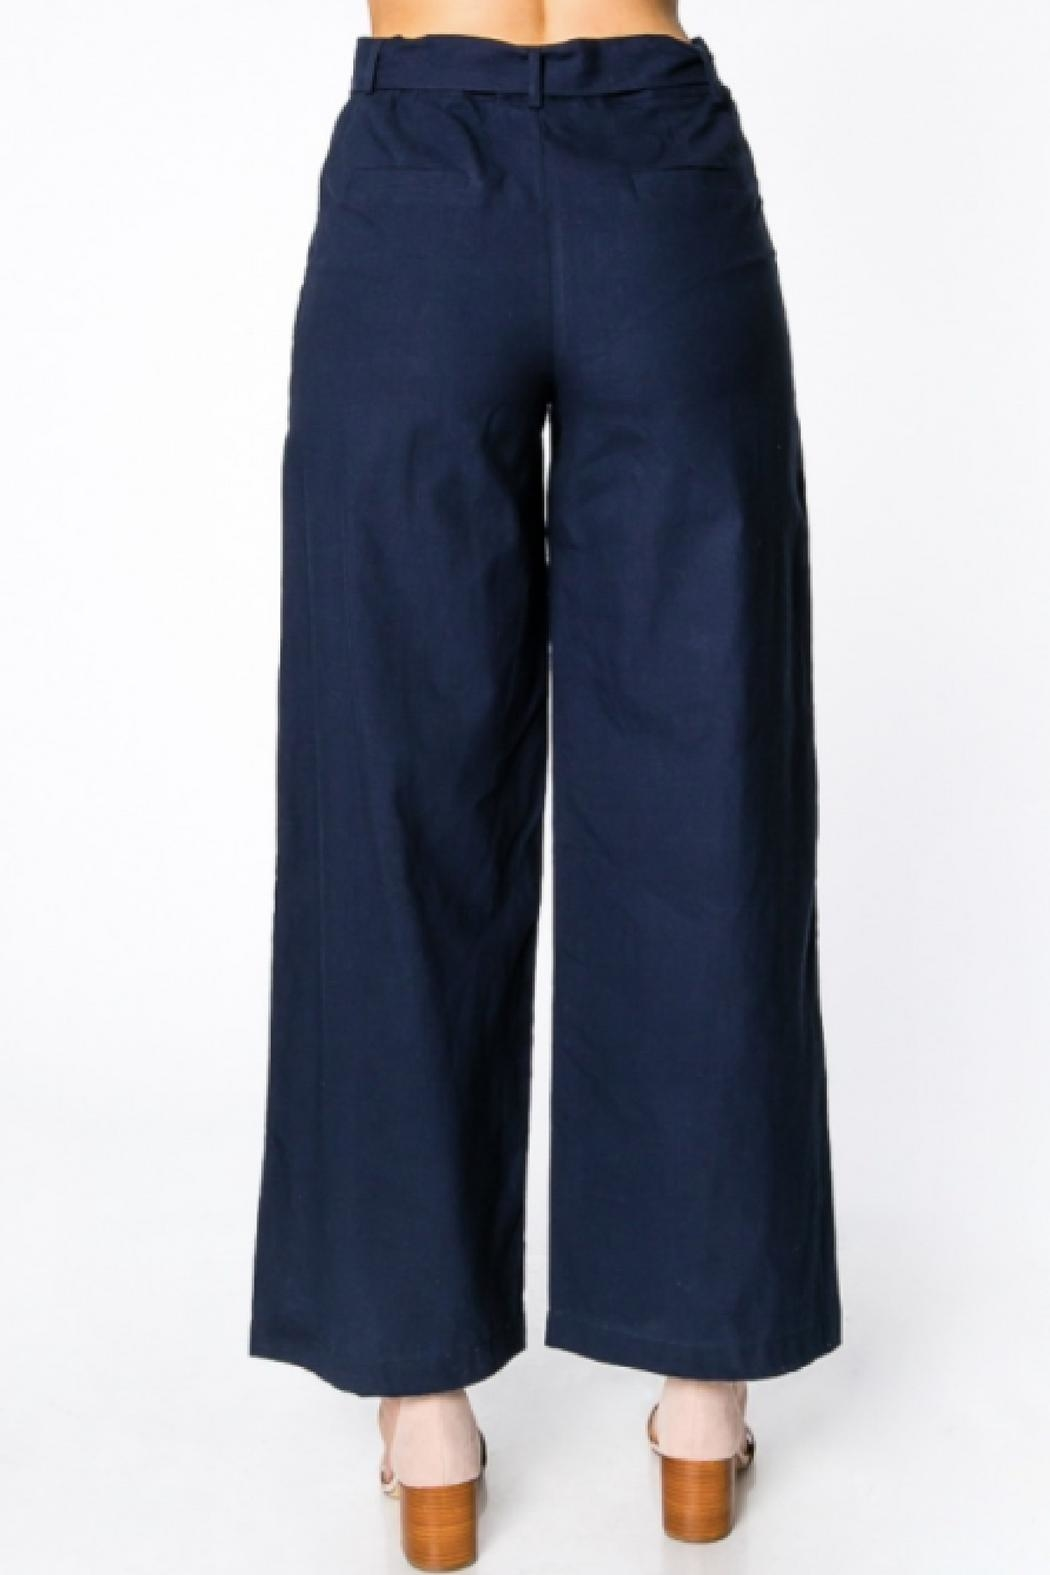 Everly Wide-Leg Belted Pants - Back Cropped Image